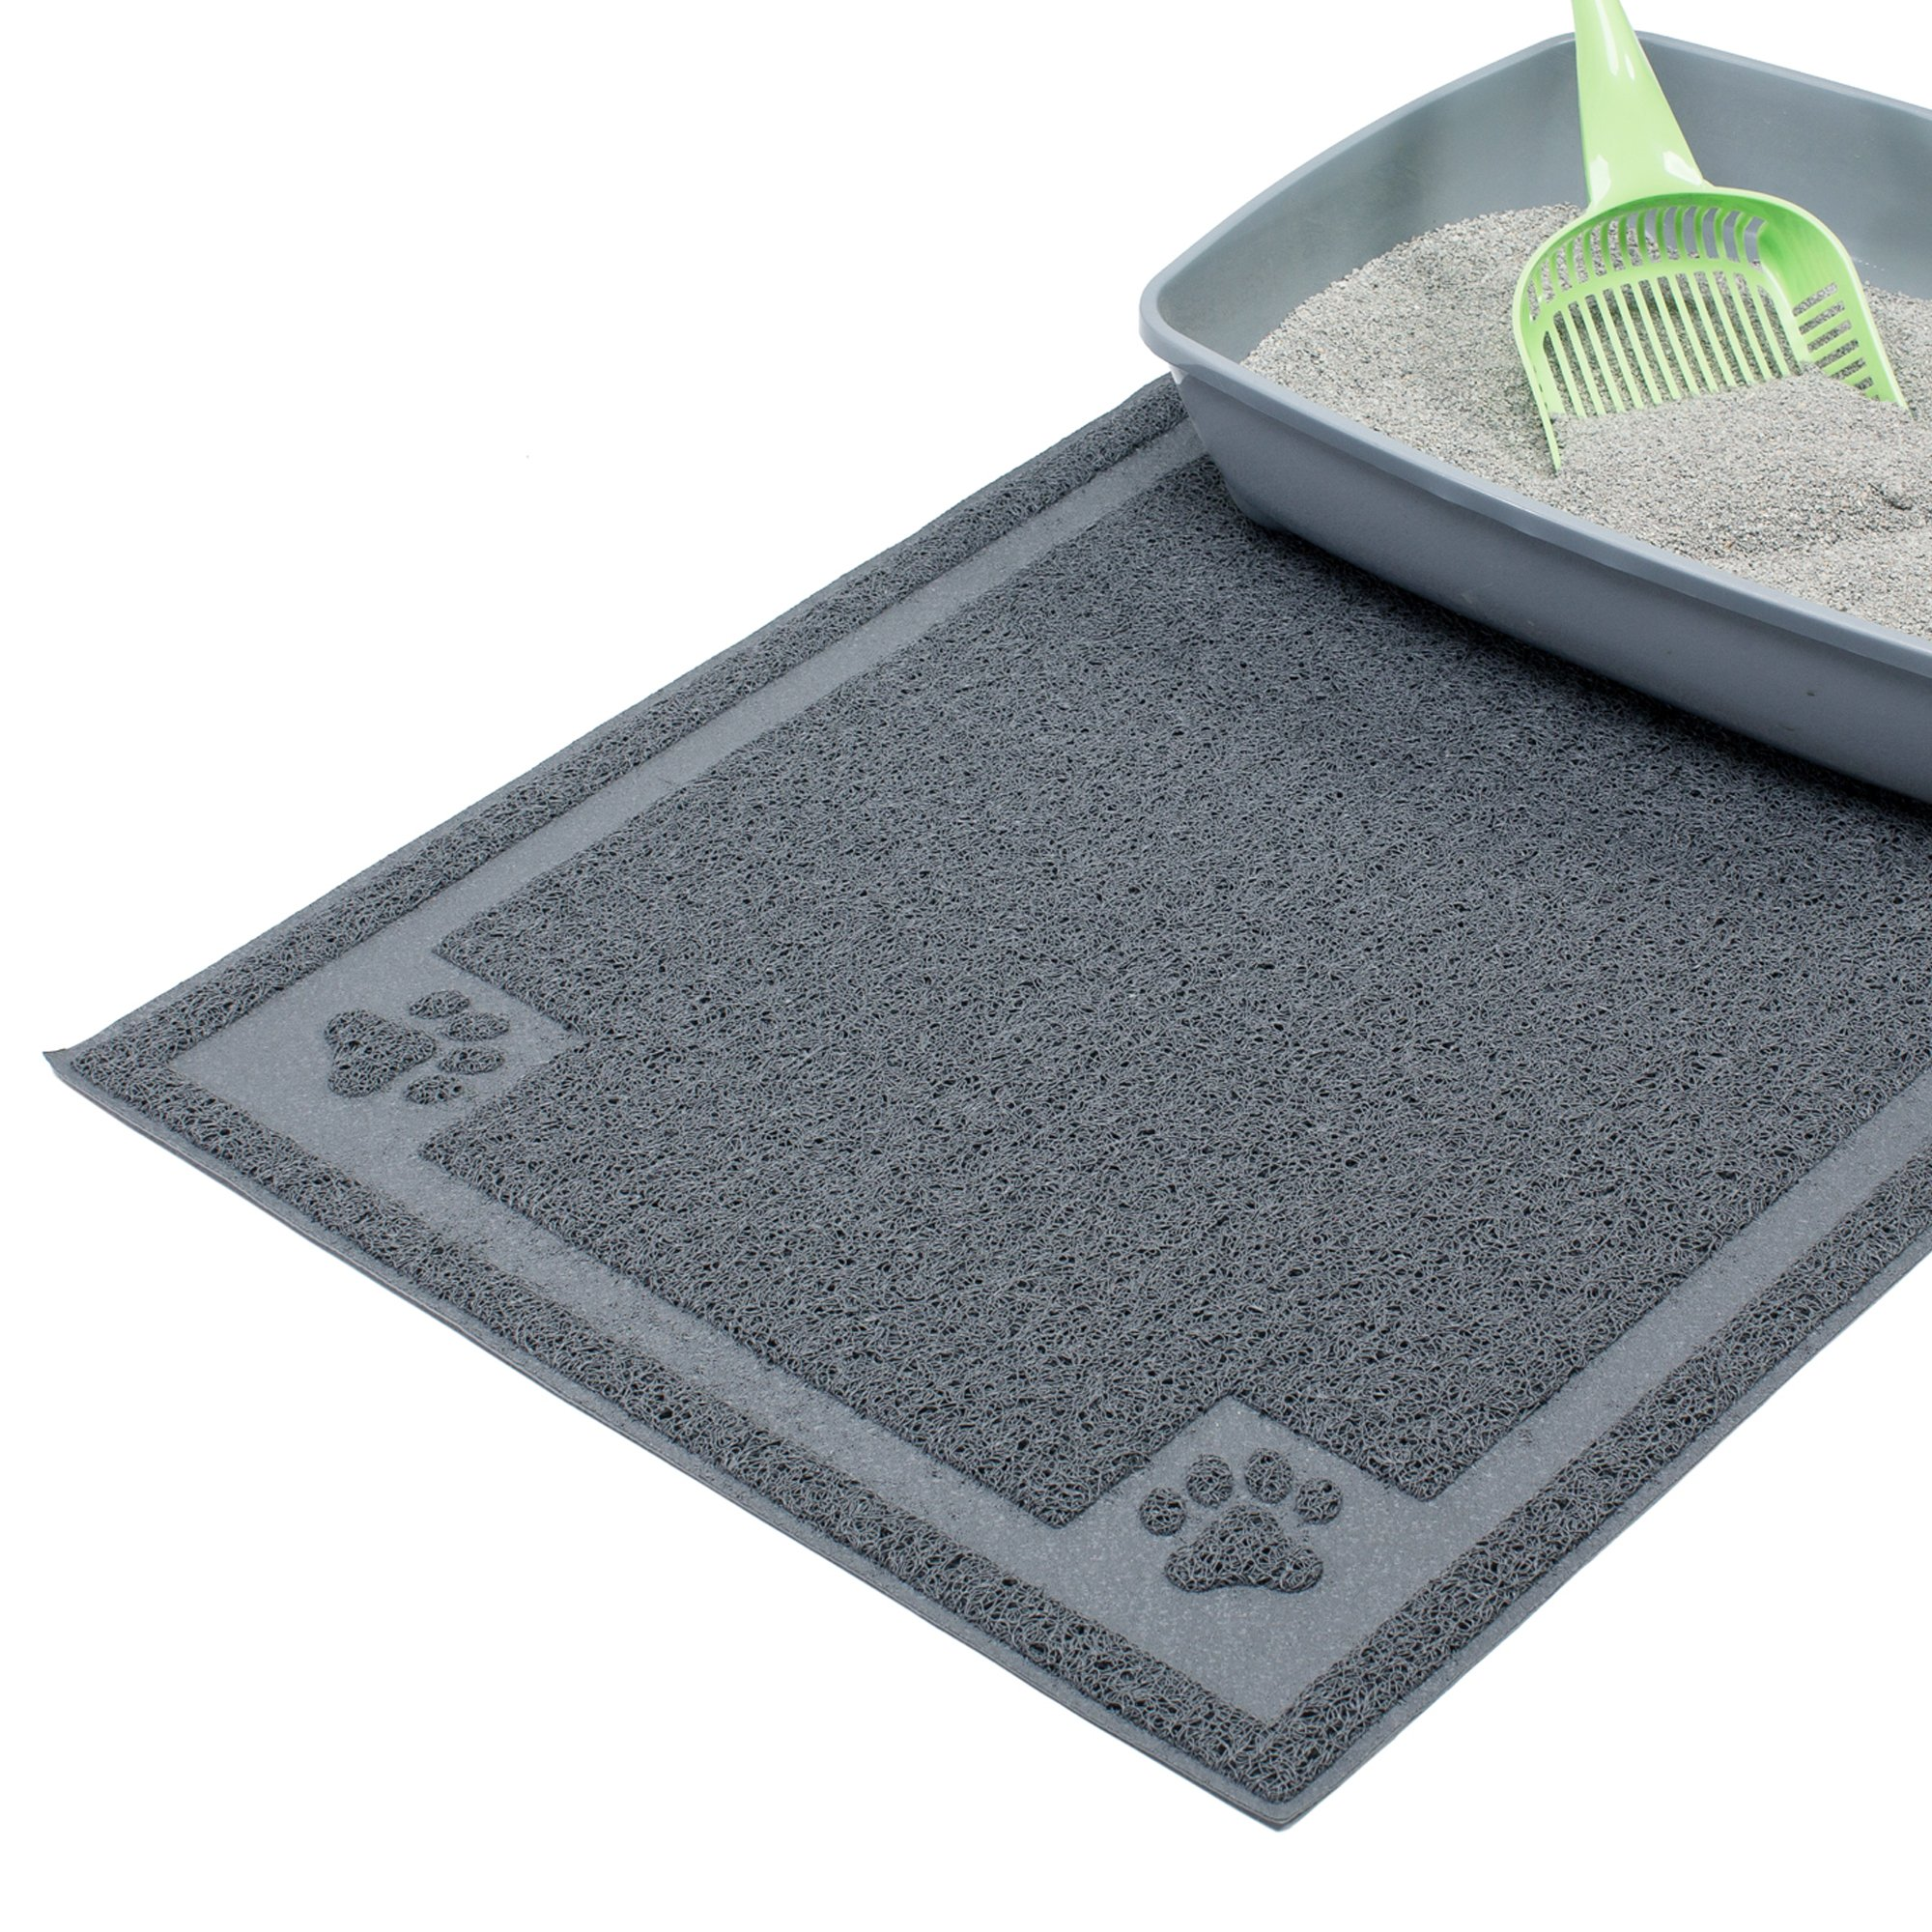 Cavalier Pets, Extra Large Dog Bowl Mat for Cats and Dogs, Silicone Non-Slip Absorbent Waterproof Dog Food Mat, Water Resistant and Easy to Clean, Unique Paw Design, 36 by 24 Inch, Grey by Cavalier Pets (Image #4)